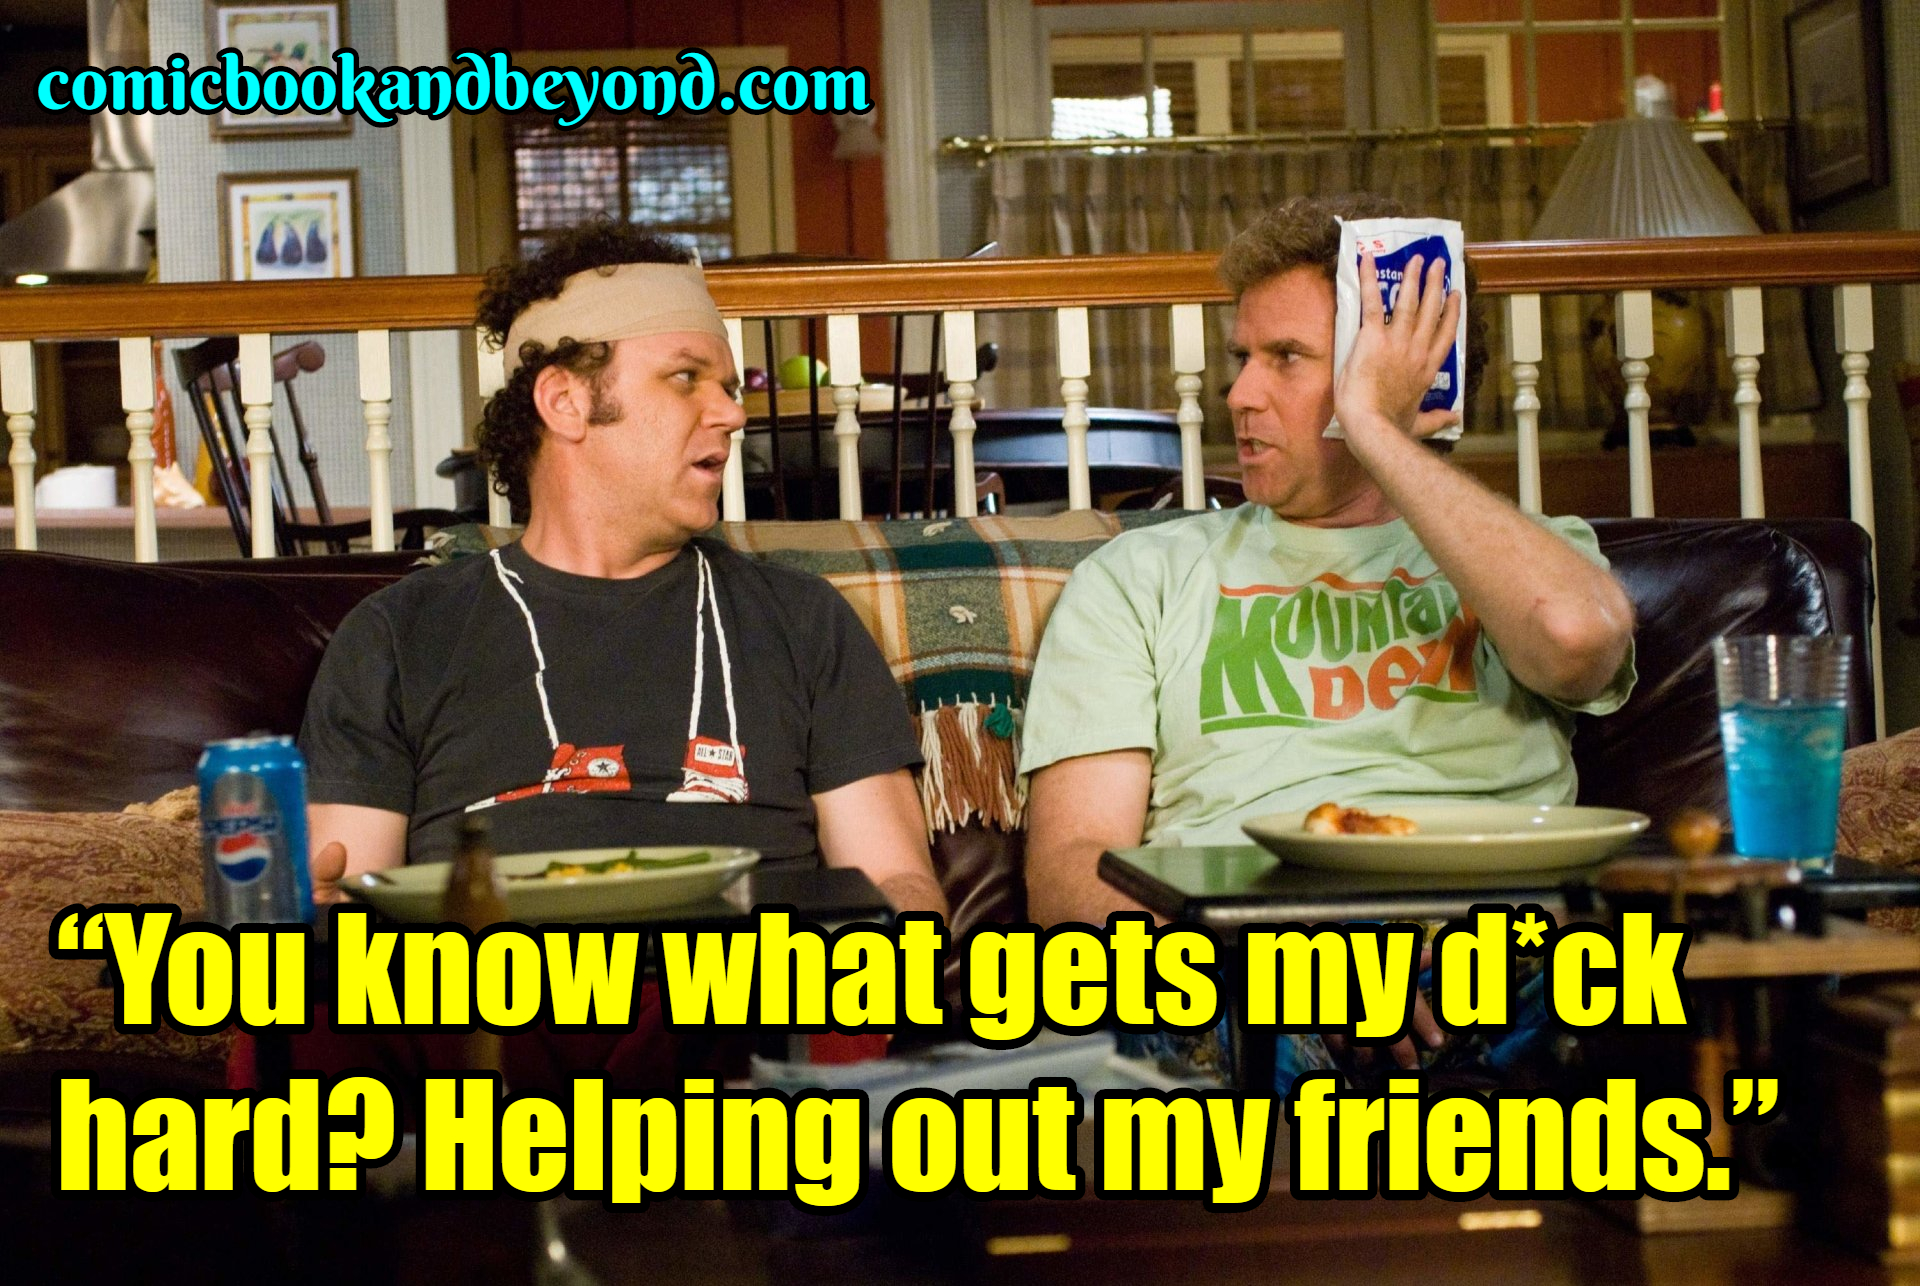 Step Brothers popular Quotes (4)